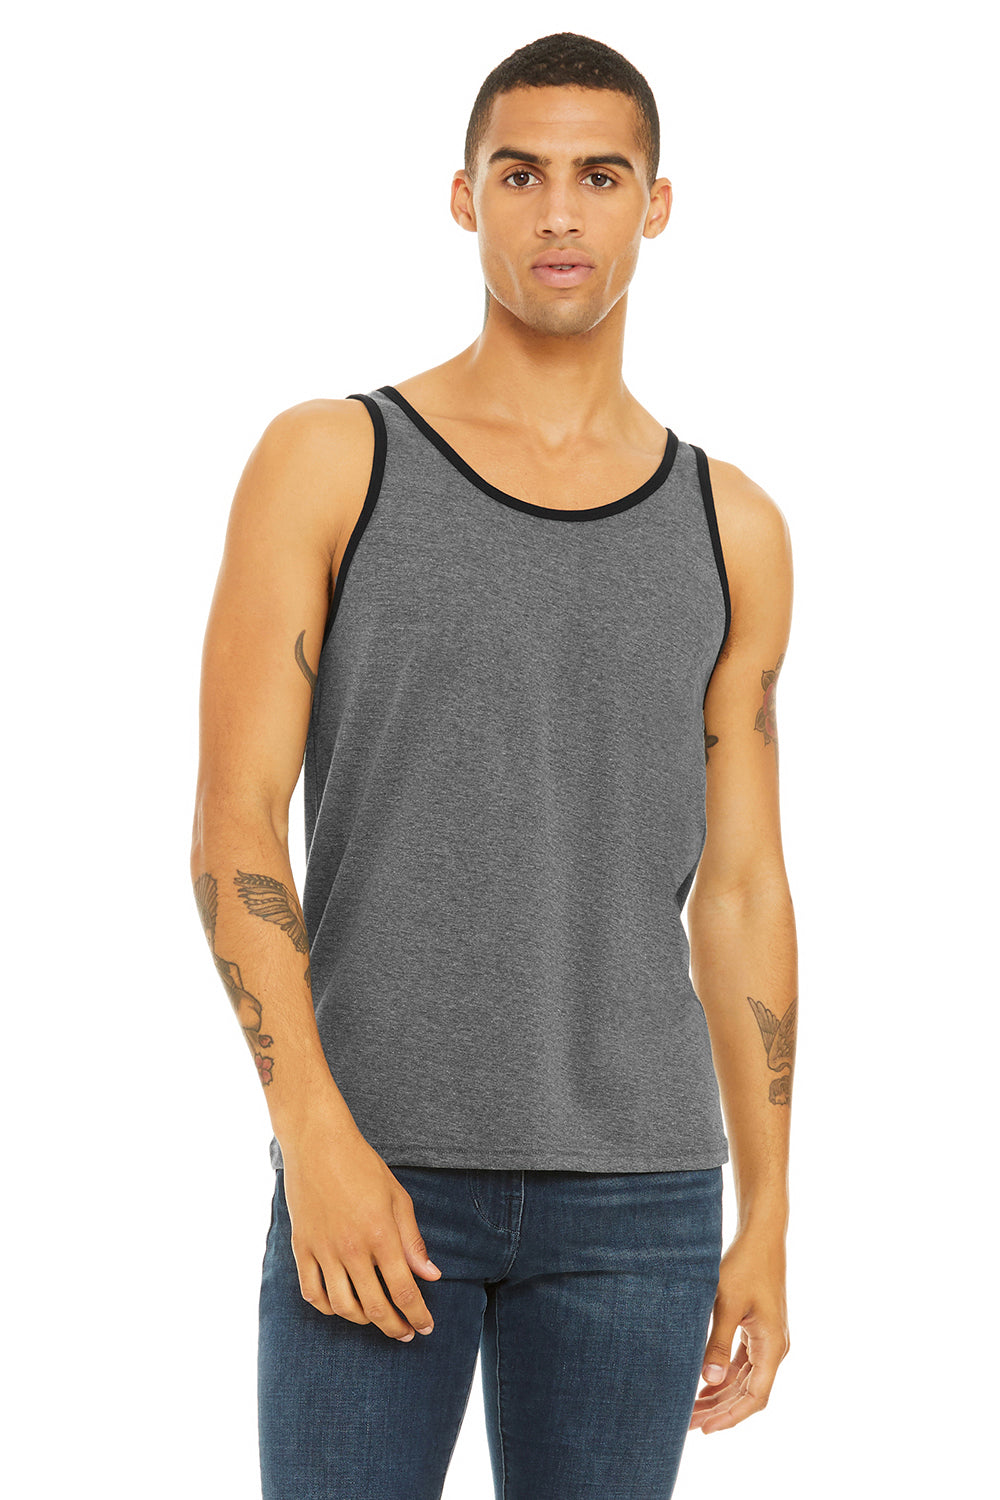 Bella + Canvas 3480 Mens Jersey Tank Top Heather Deep Grey/Black Front